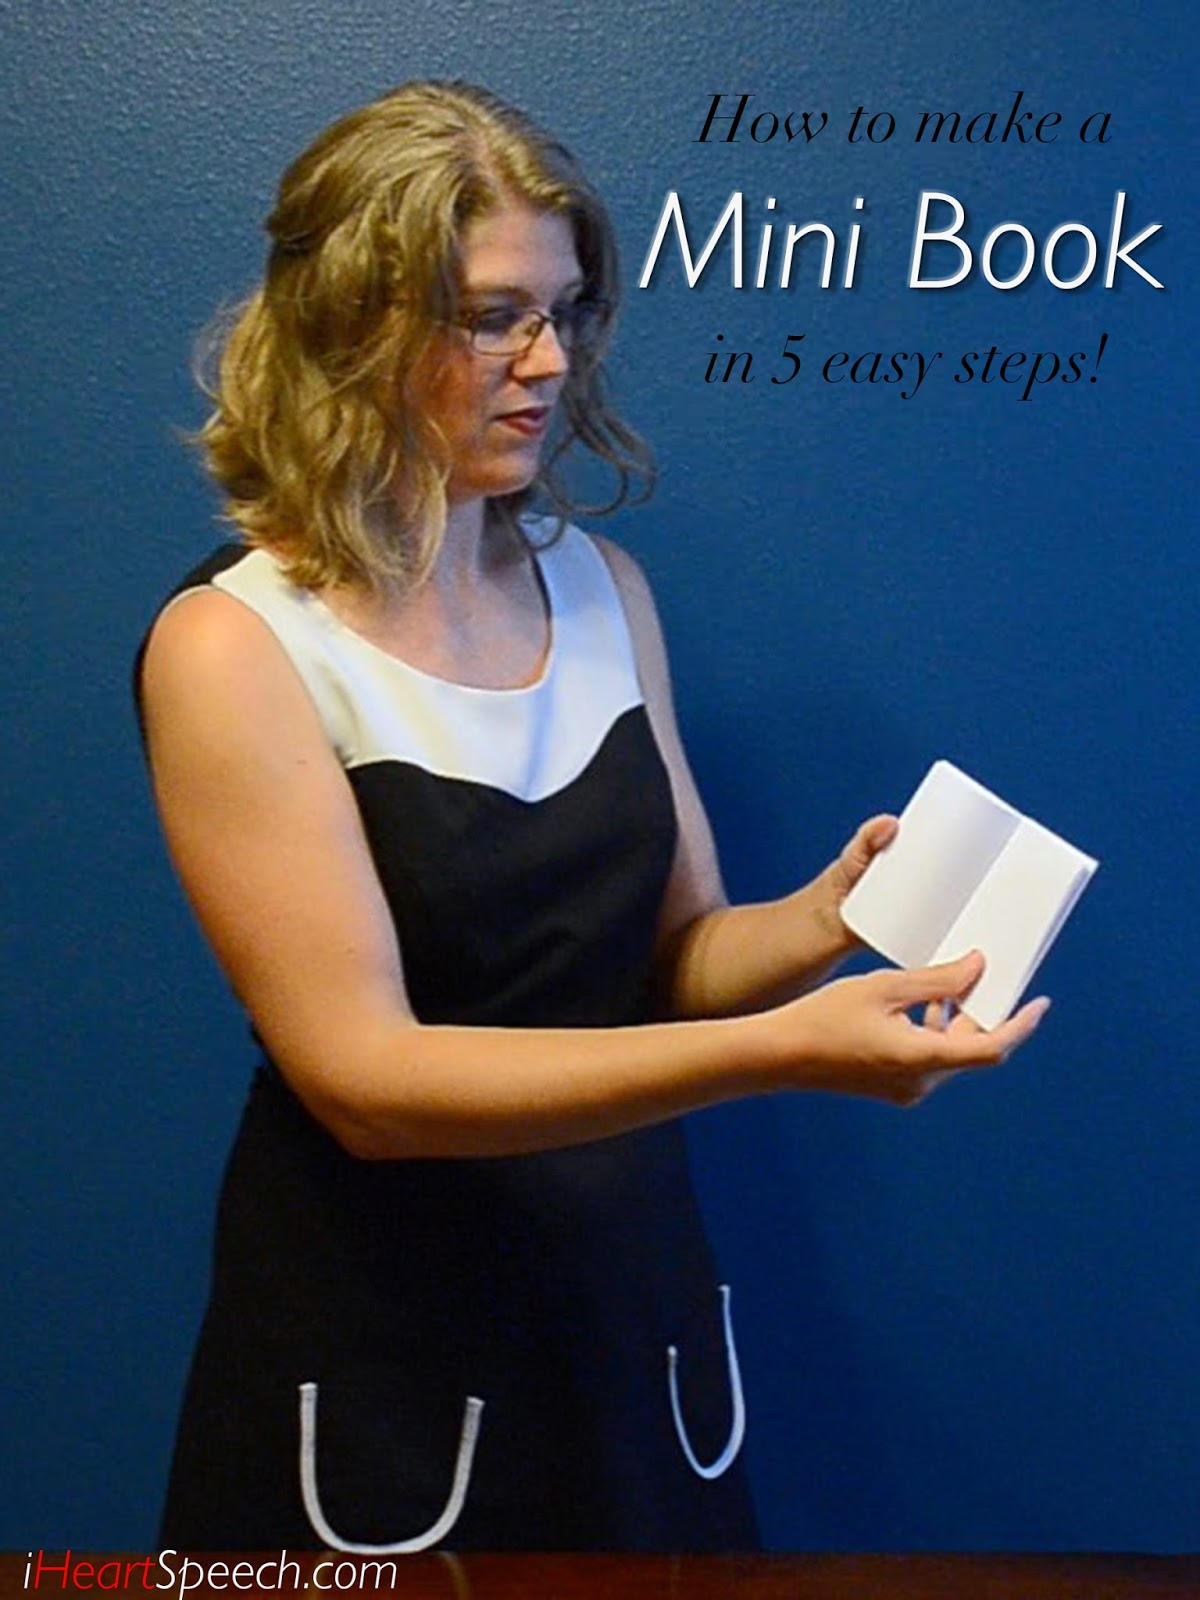 How To Make A Book Mini : Iheartspeech how to make a mini book in easy steps